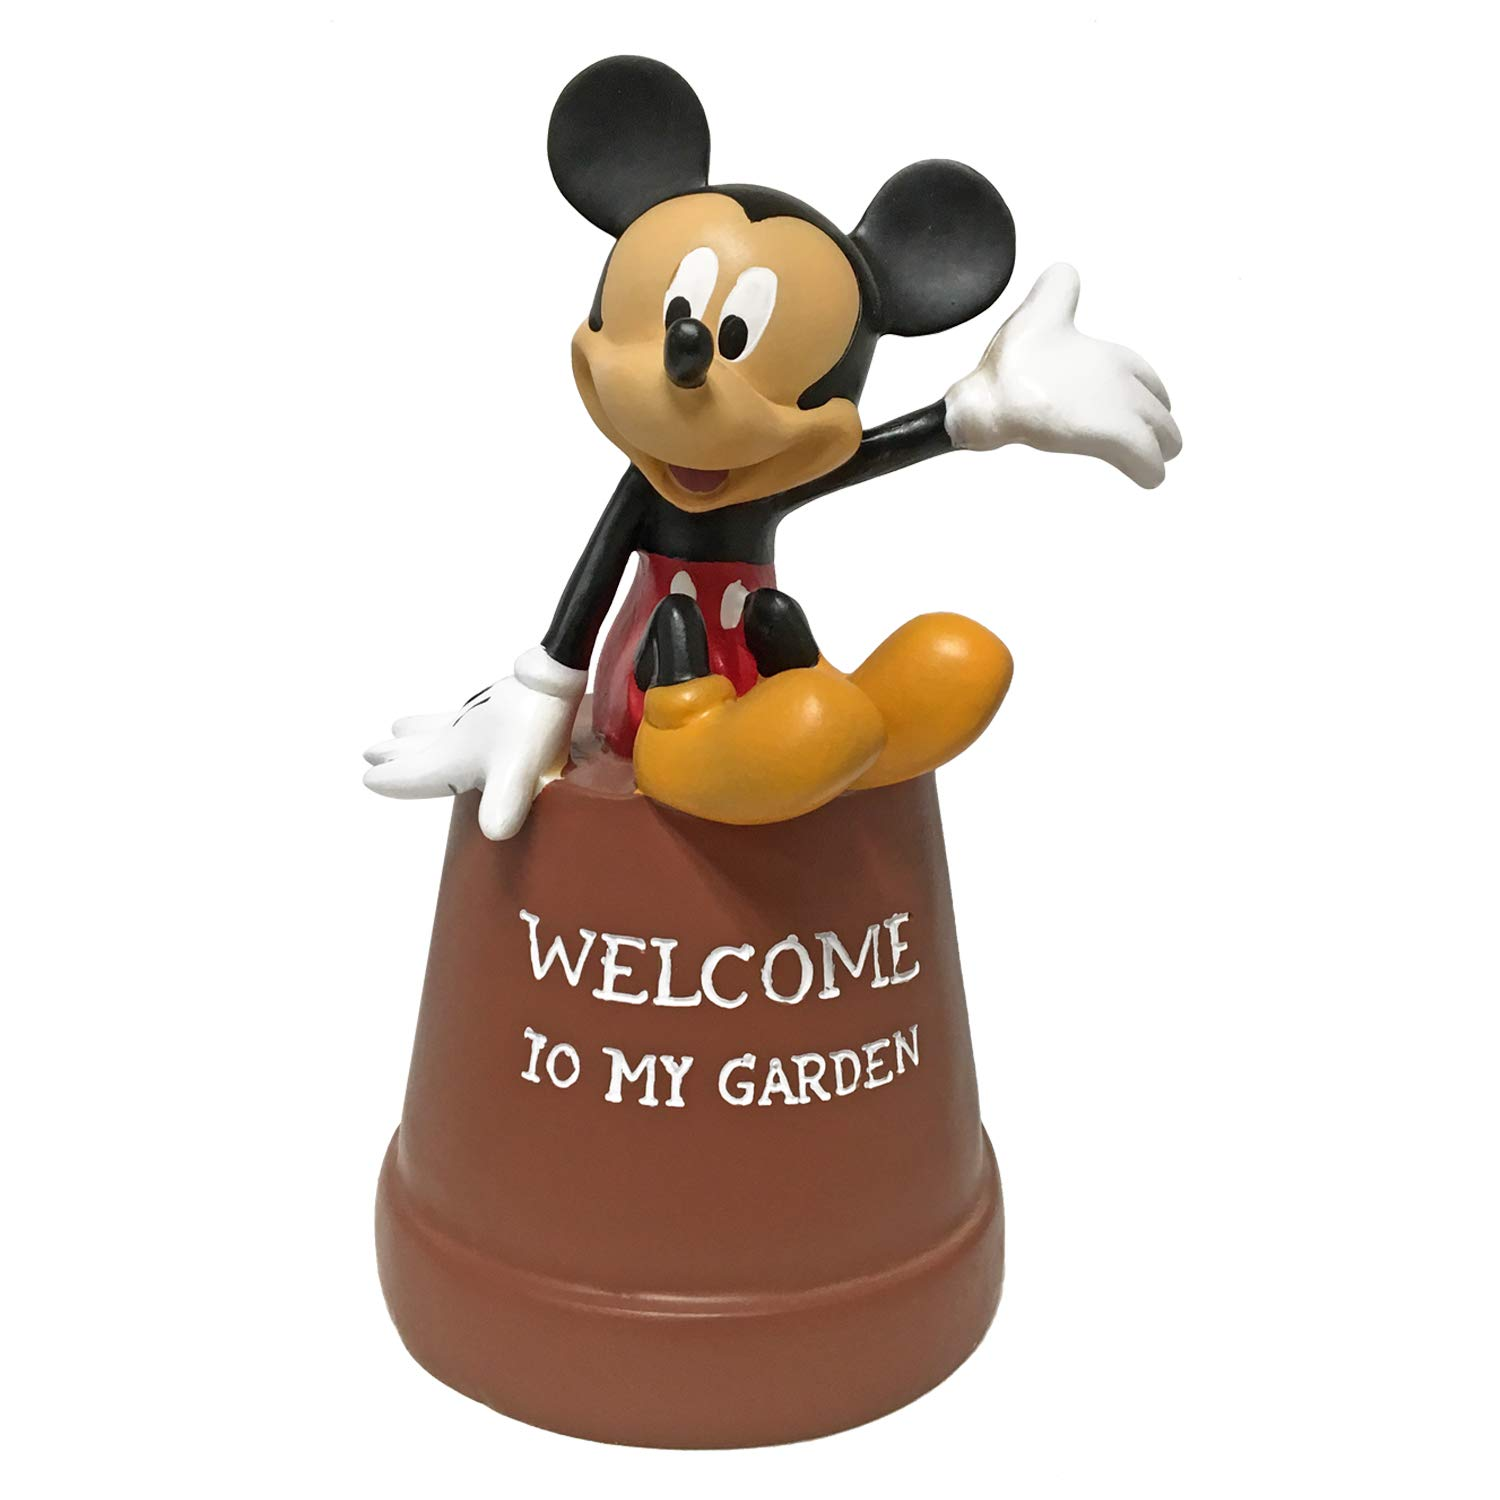 Mickey Mouse Key Hider Pot Diversion, Hand-Painted, Official Disney Licensed Product 7 Inches Tall